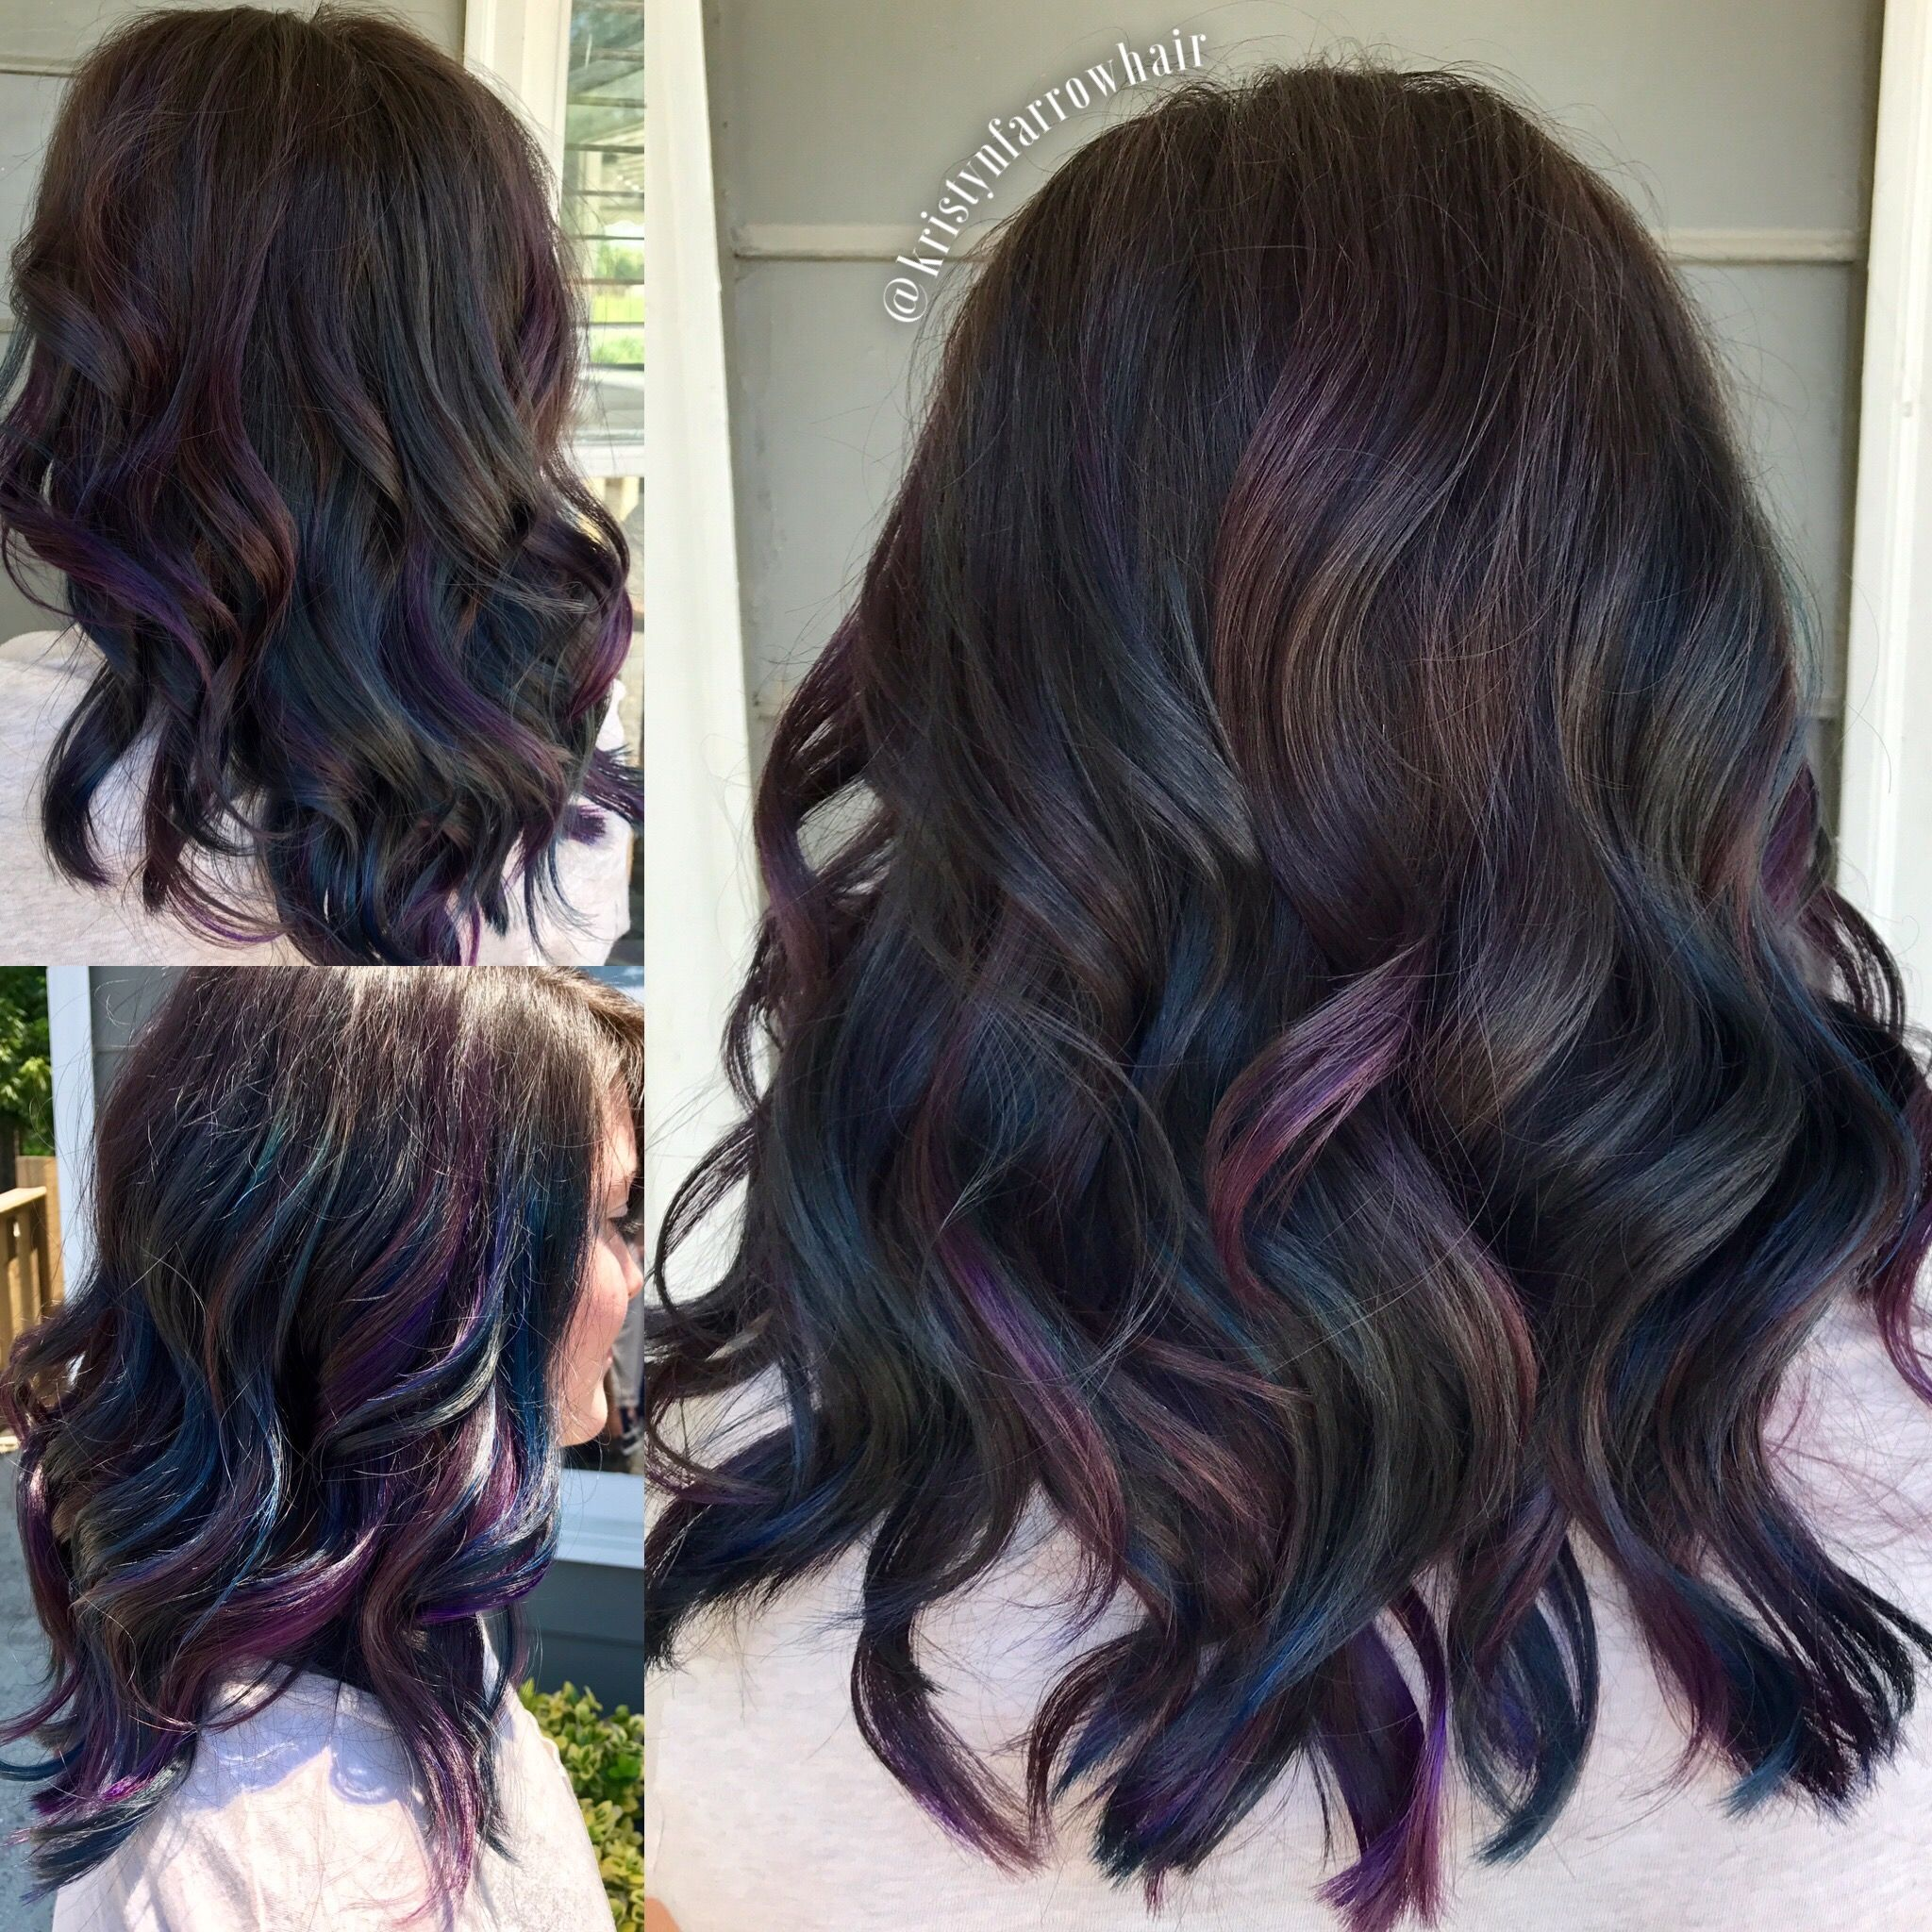 Oil Slick Hair Pulpriot In 2019 Hair Slick Hairstyles